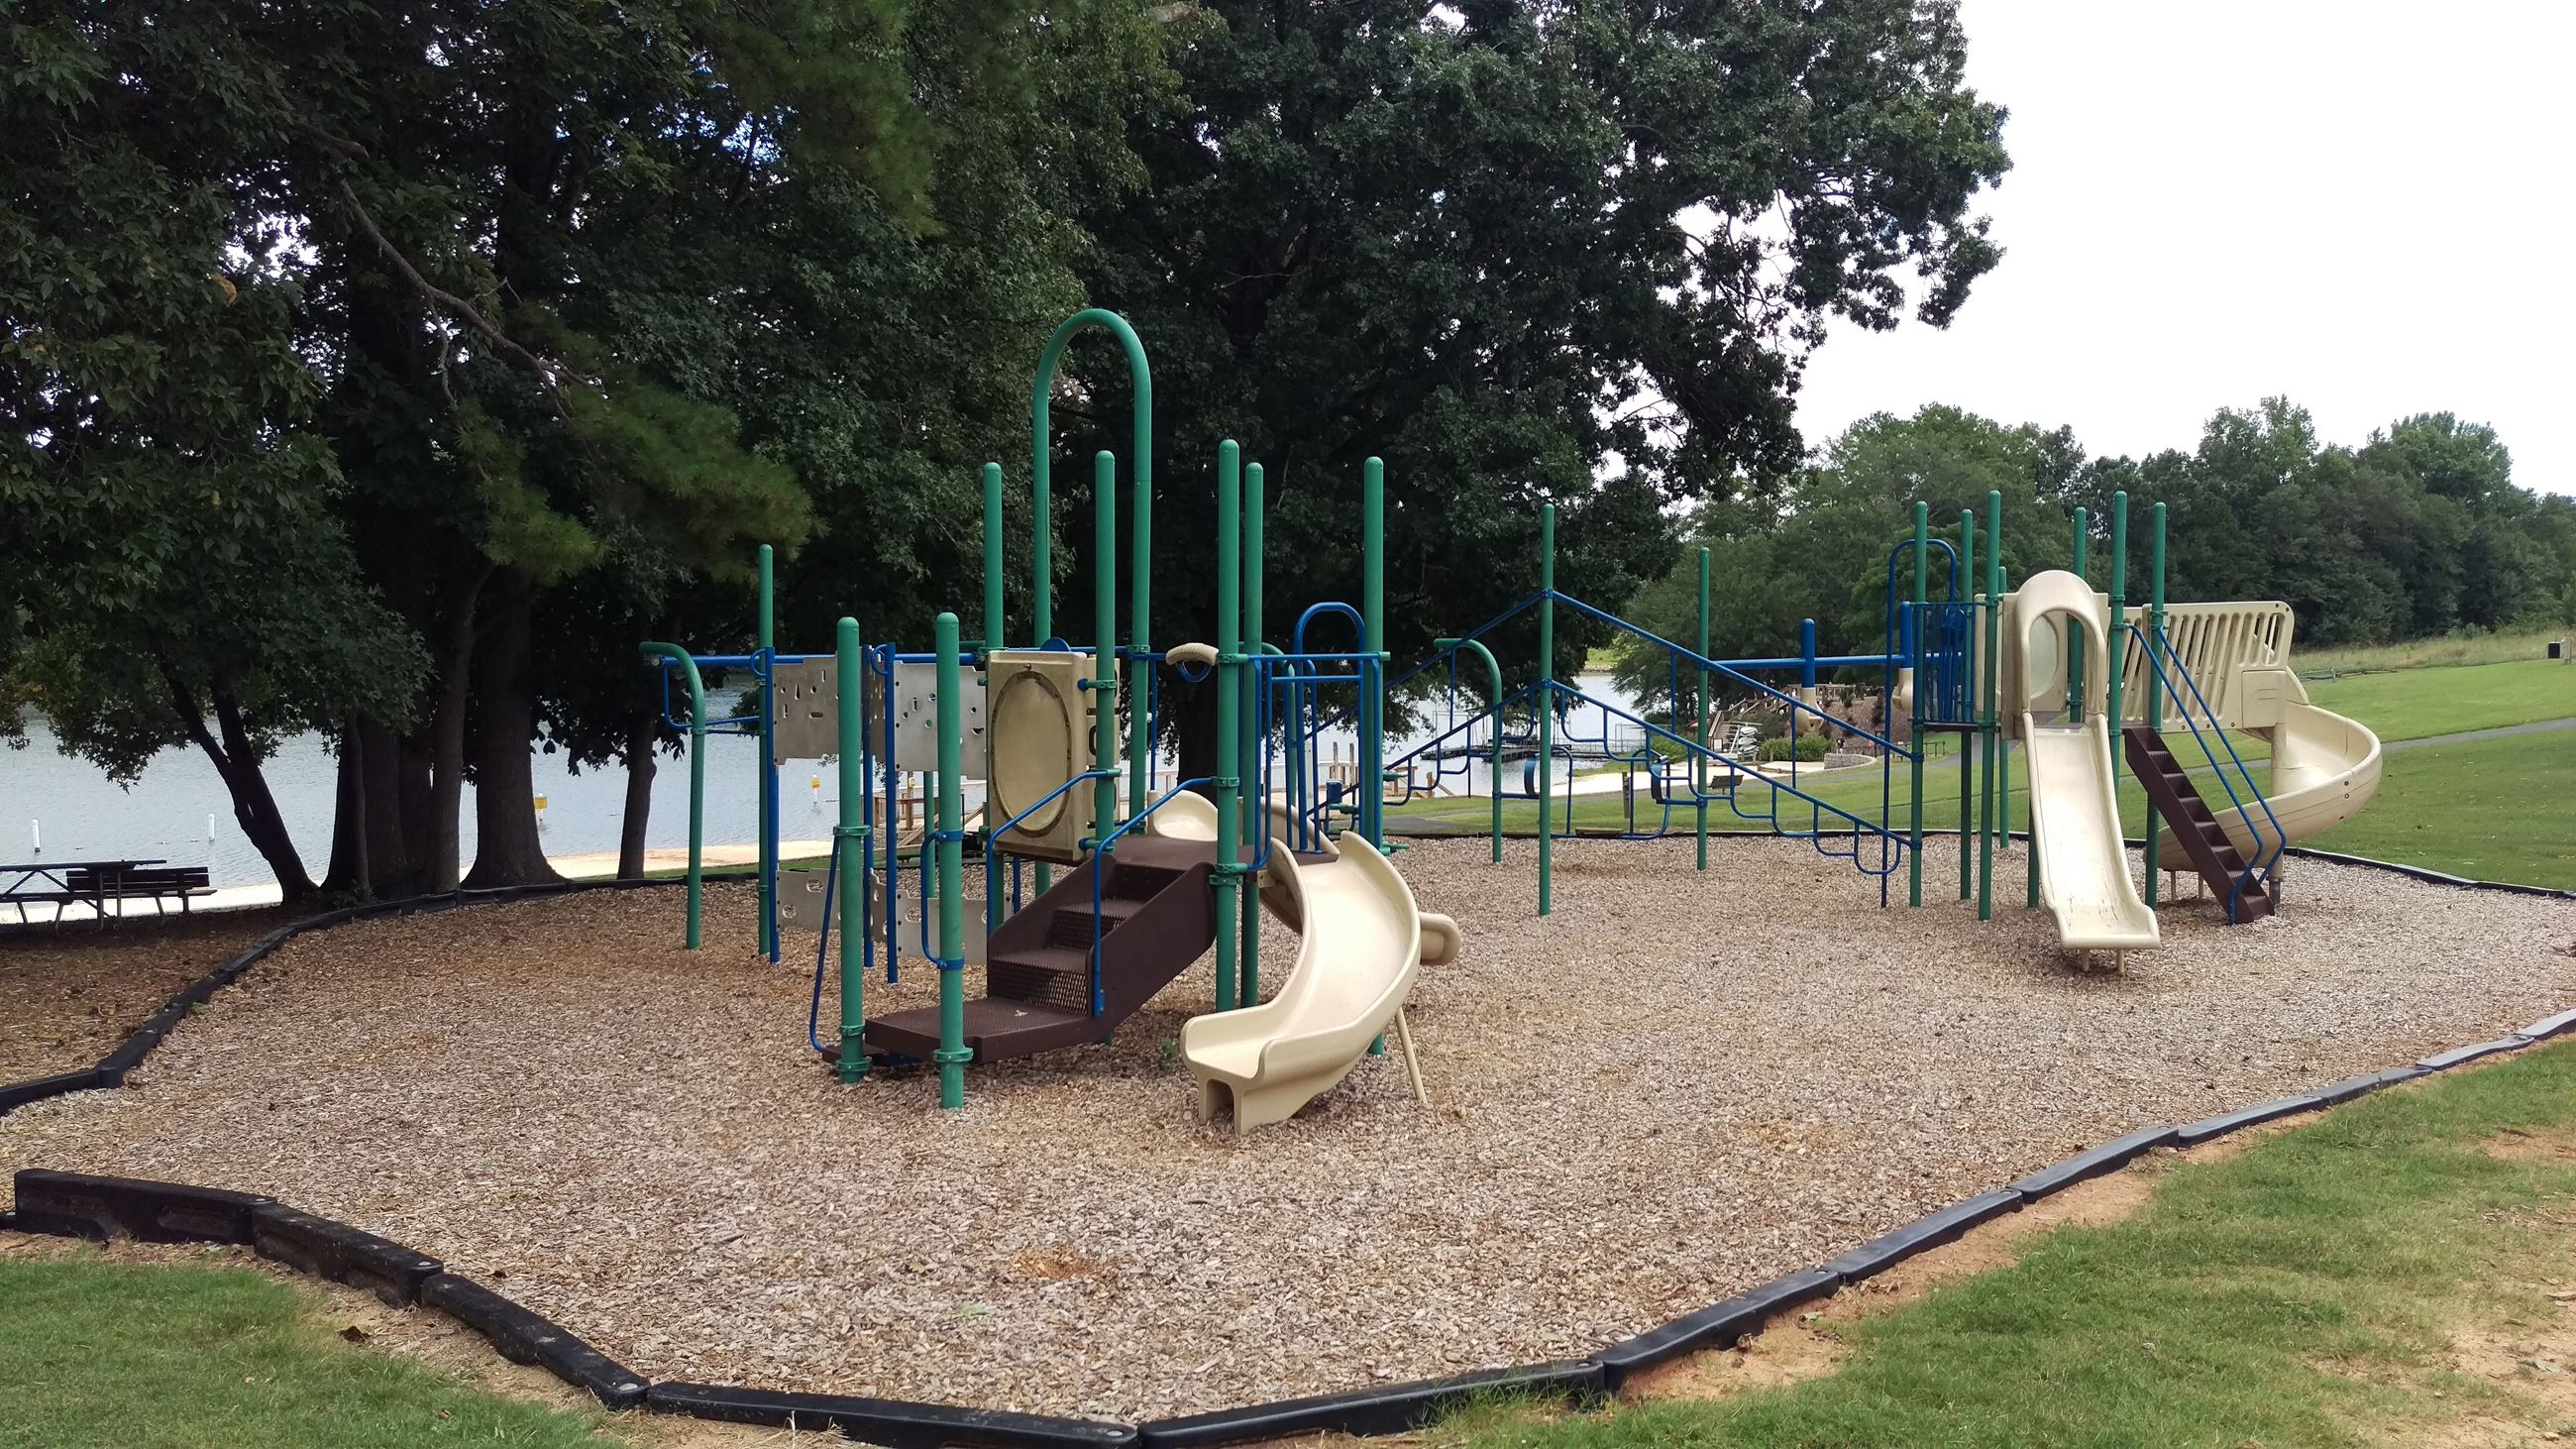 Photo of Playground 1 at Sandy Creek Park.